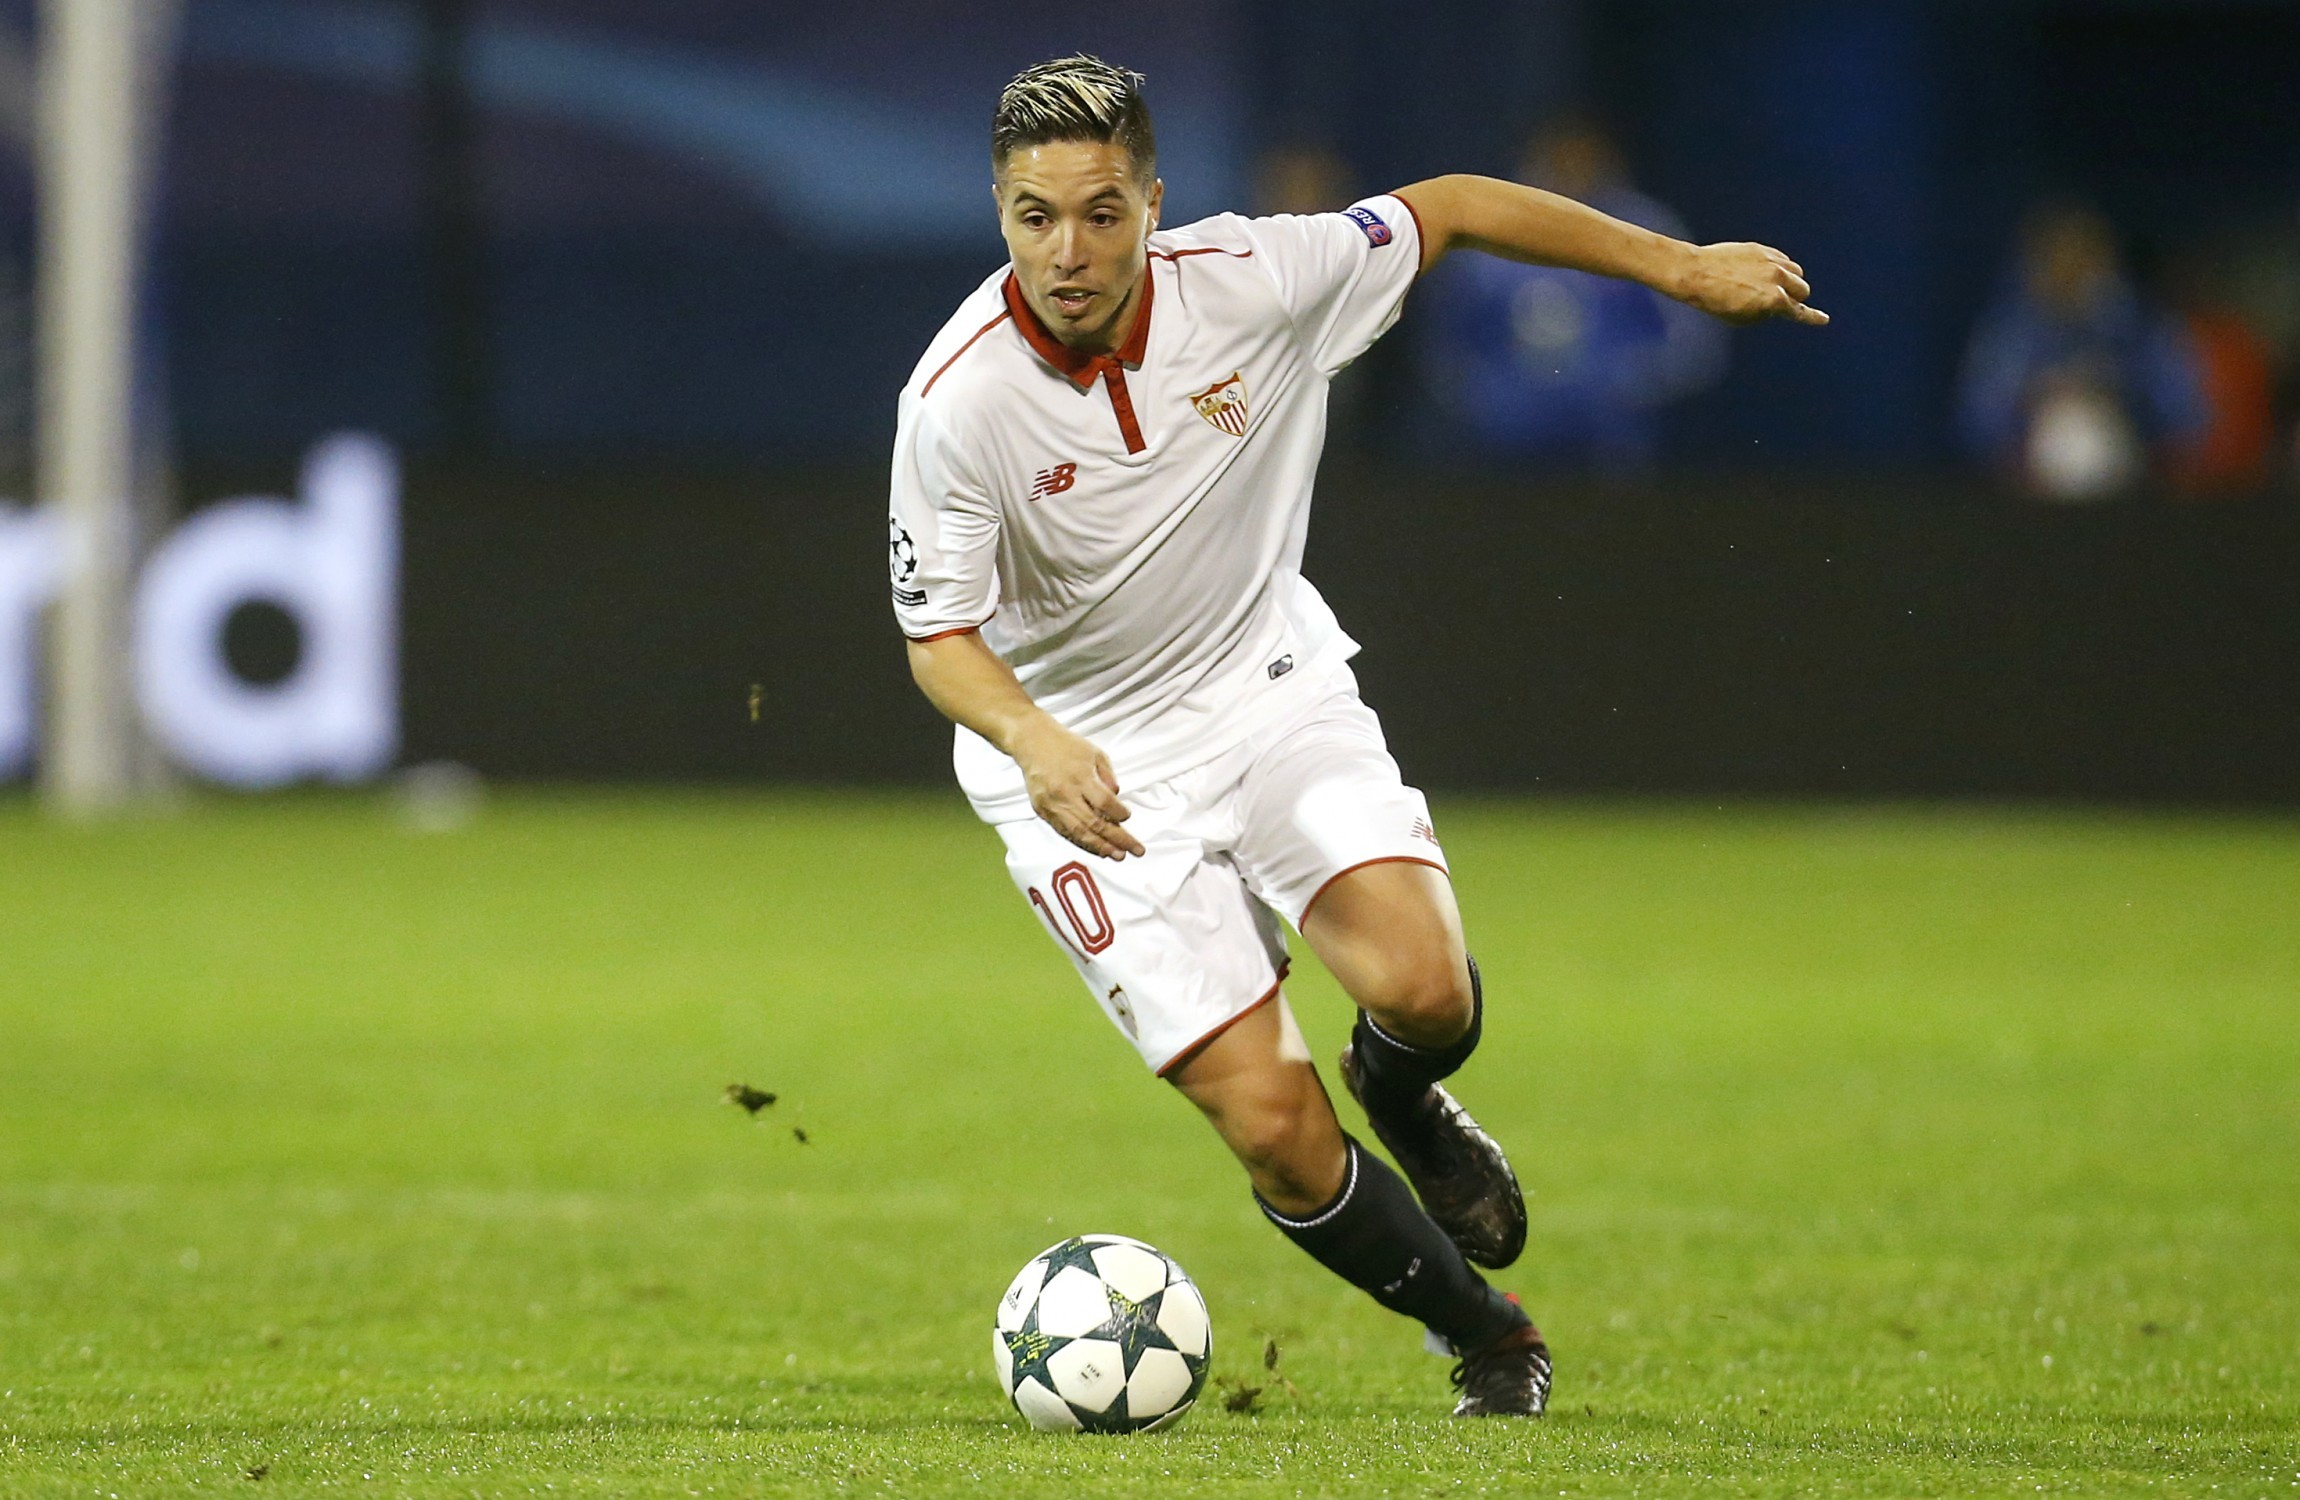 Samir Nasri in Spanish doping probe after vitamin booster · The42